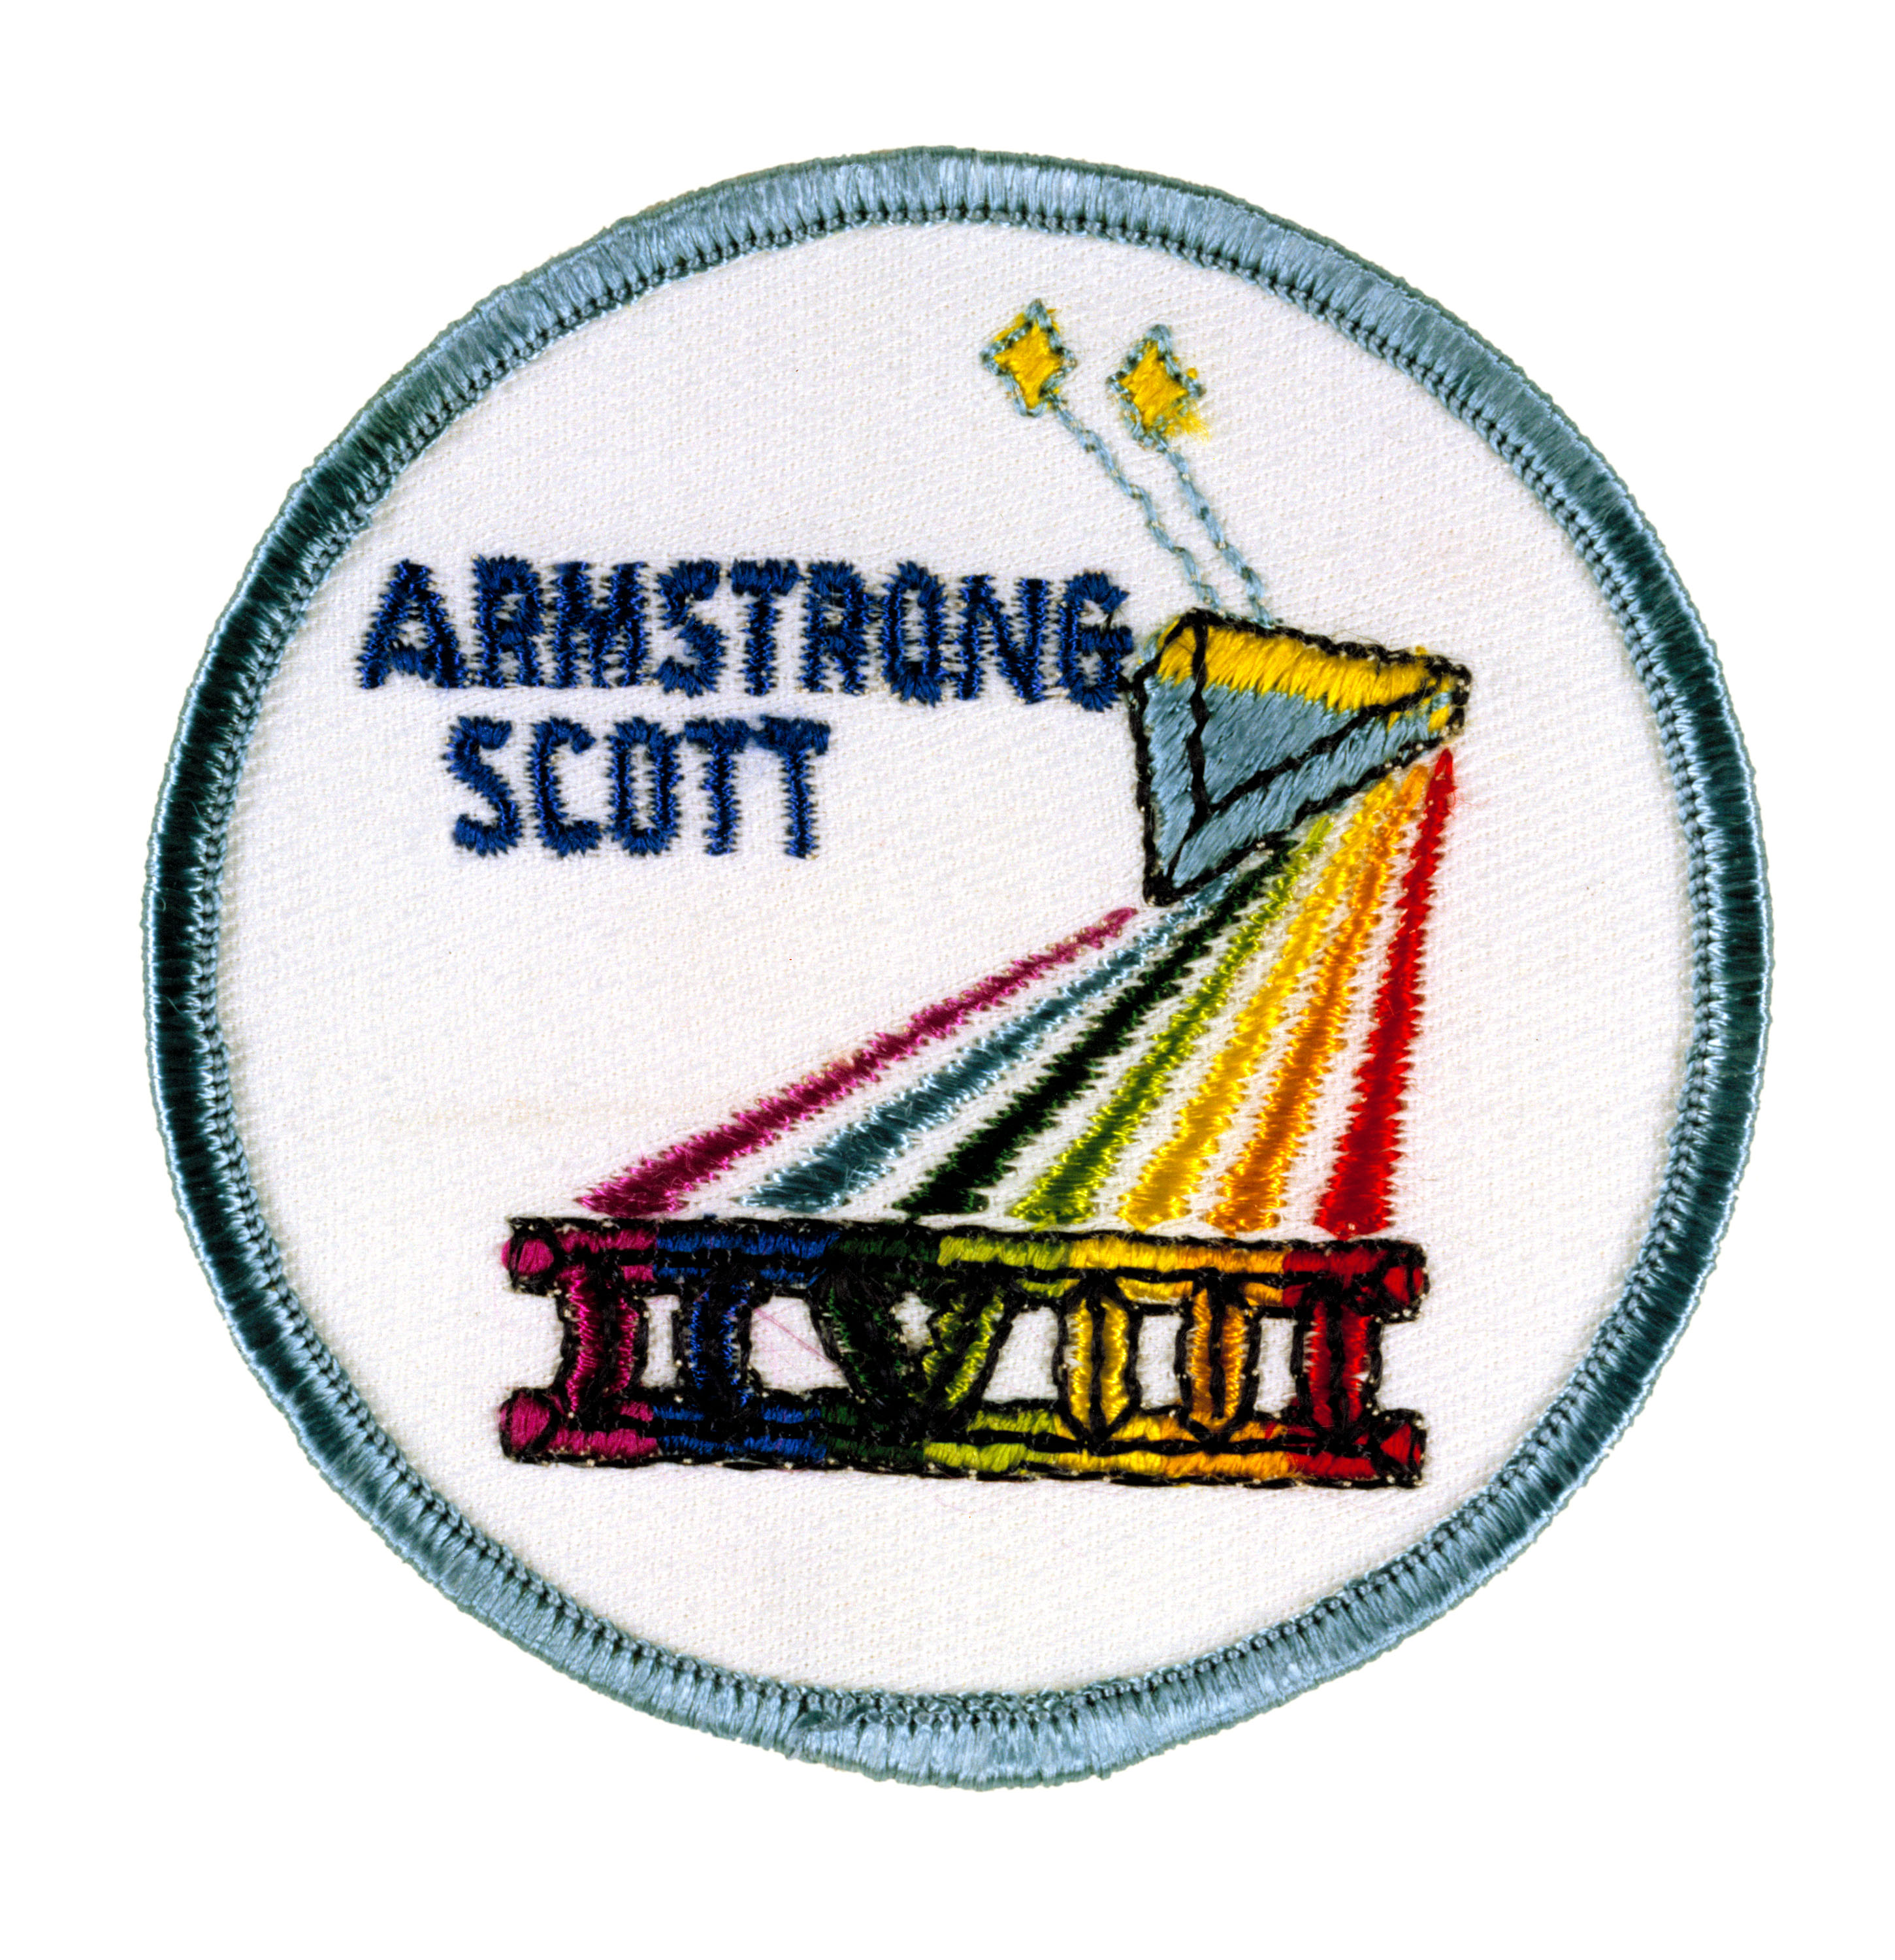 neil armstrong mission name patch - photo #7